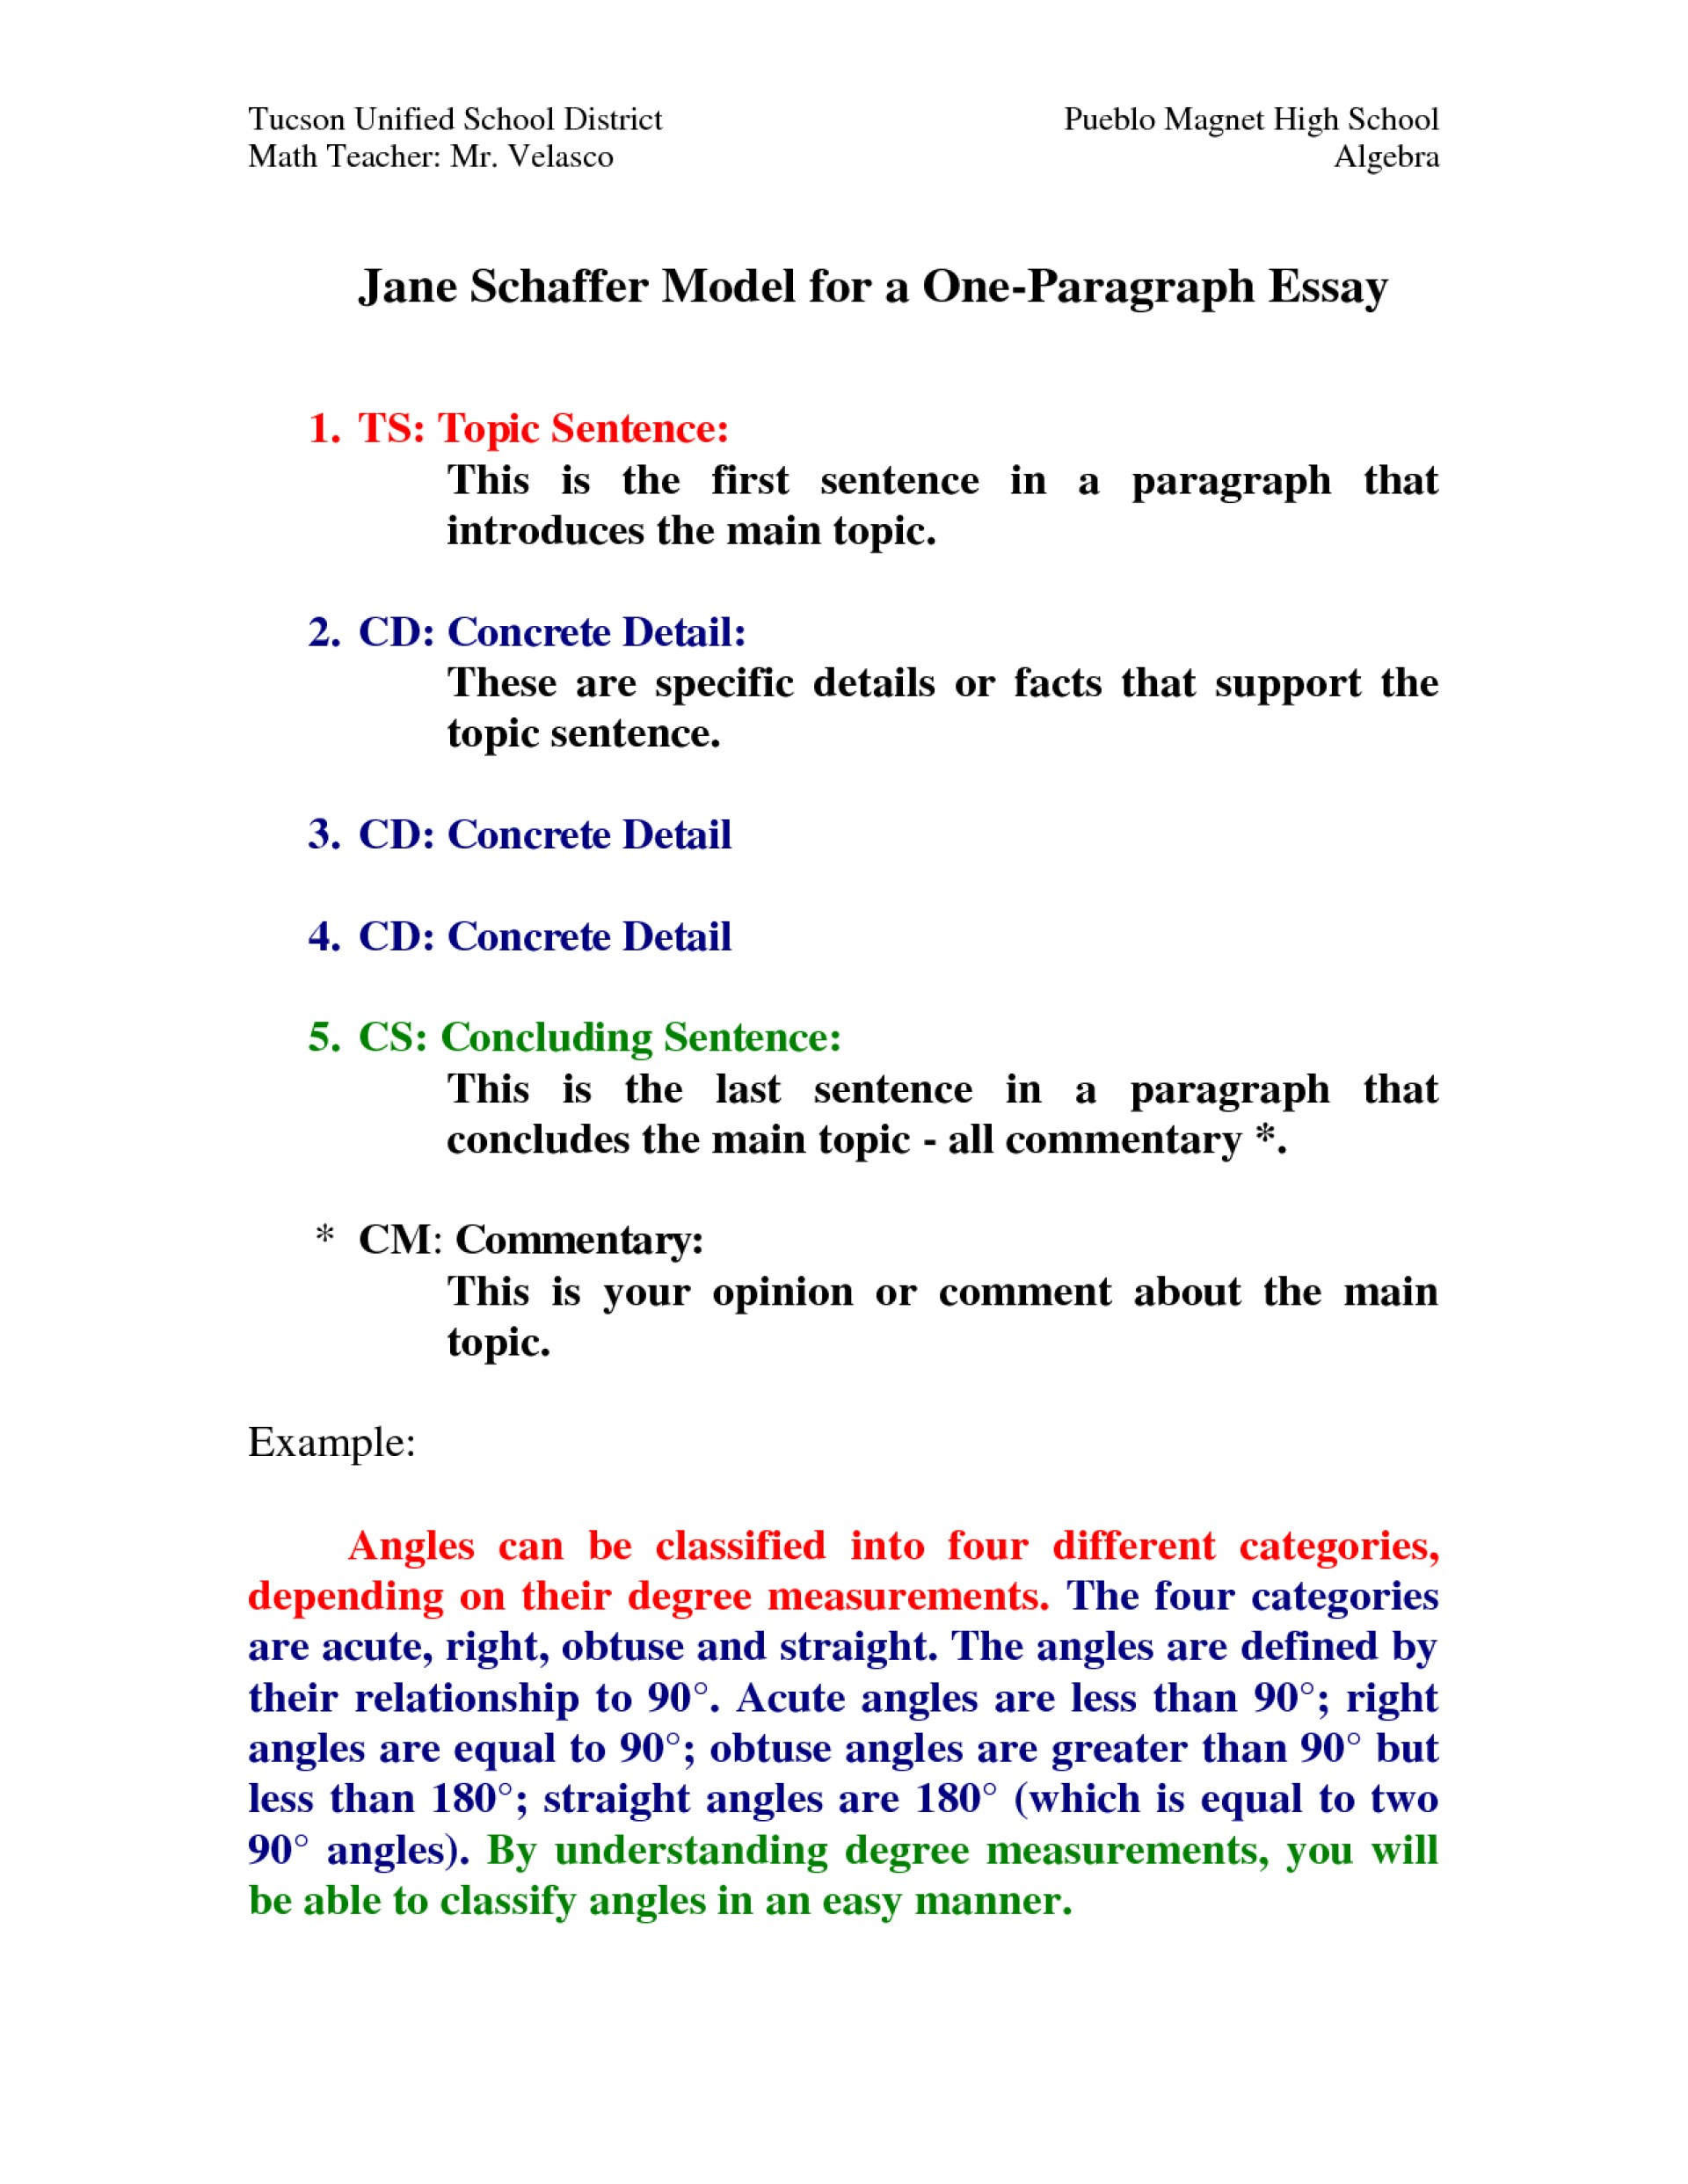 006 Essay Example How Many Sentences Are In Paragraph For Wondrous A An College 5 Each Of 1920